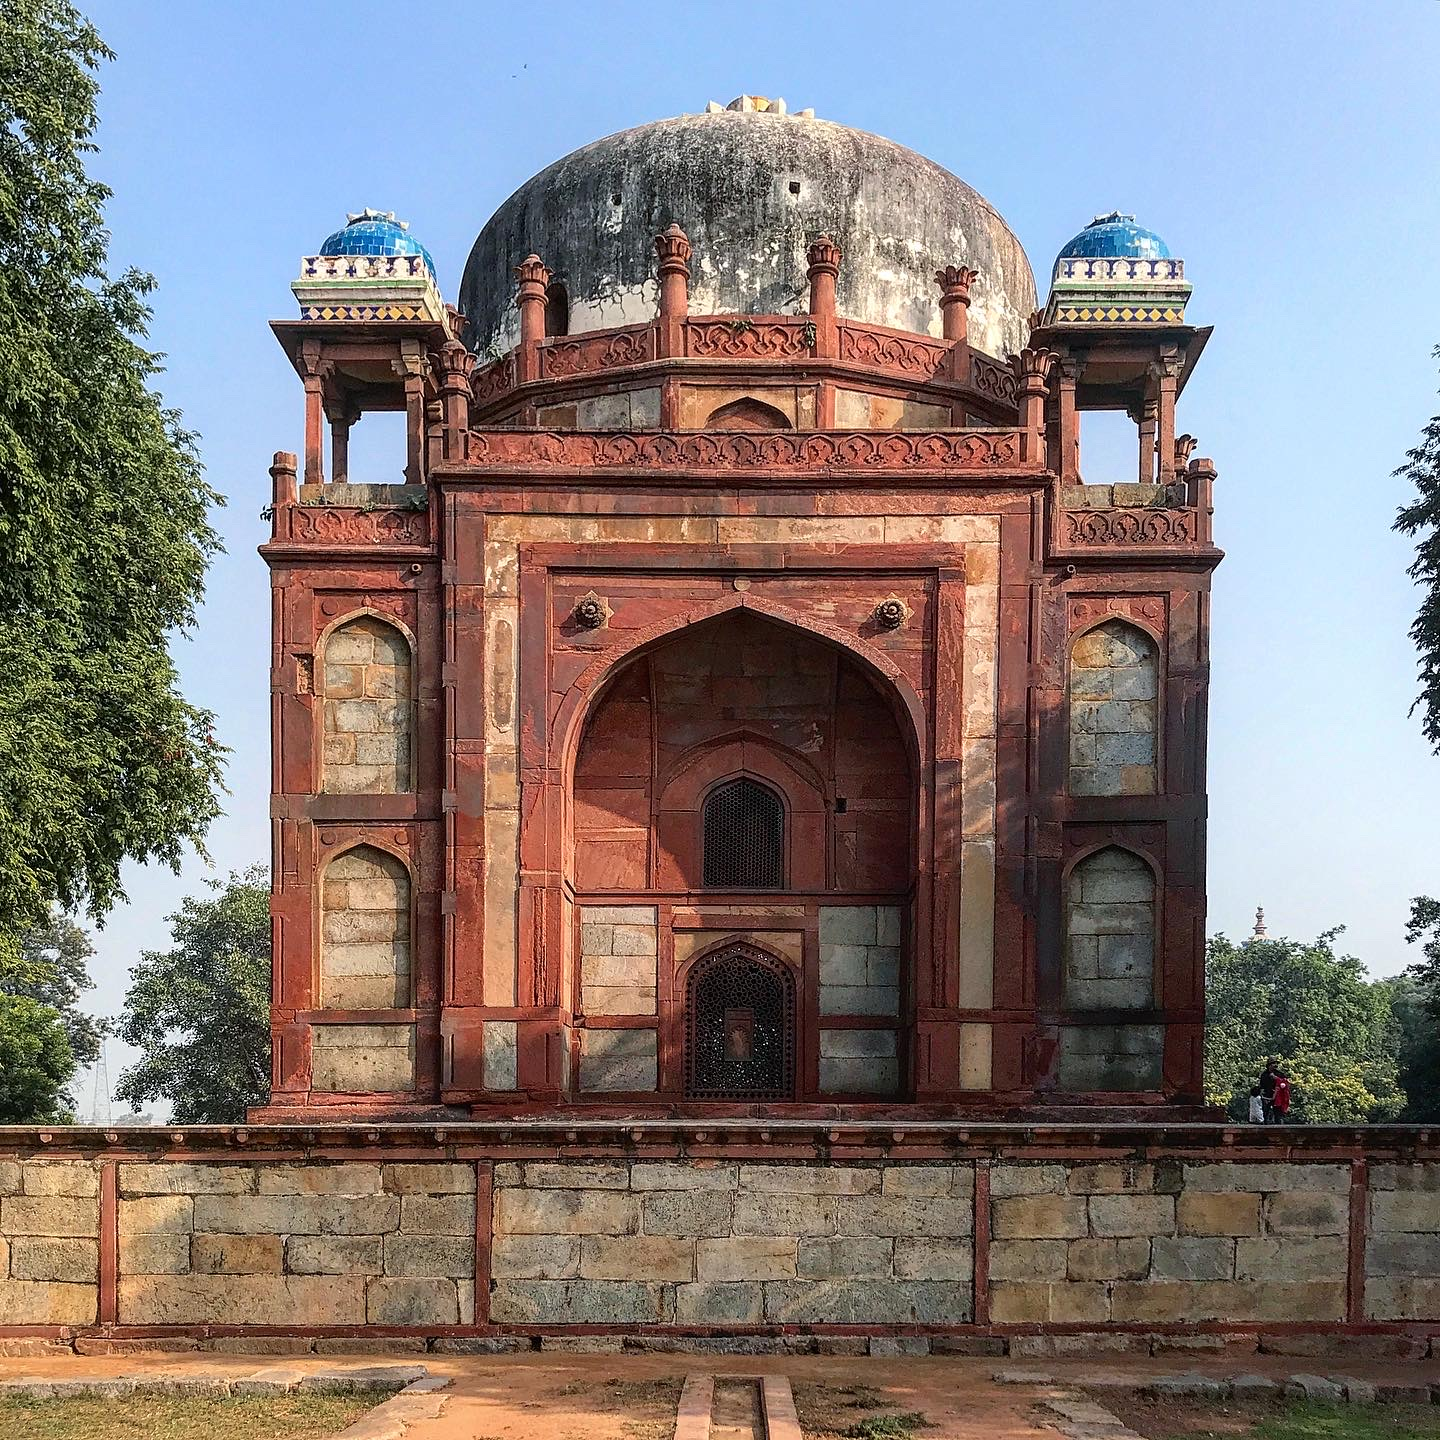 One of the smaller mauseleums at the complex of the Humayun's tomb